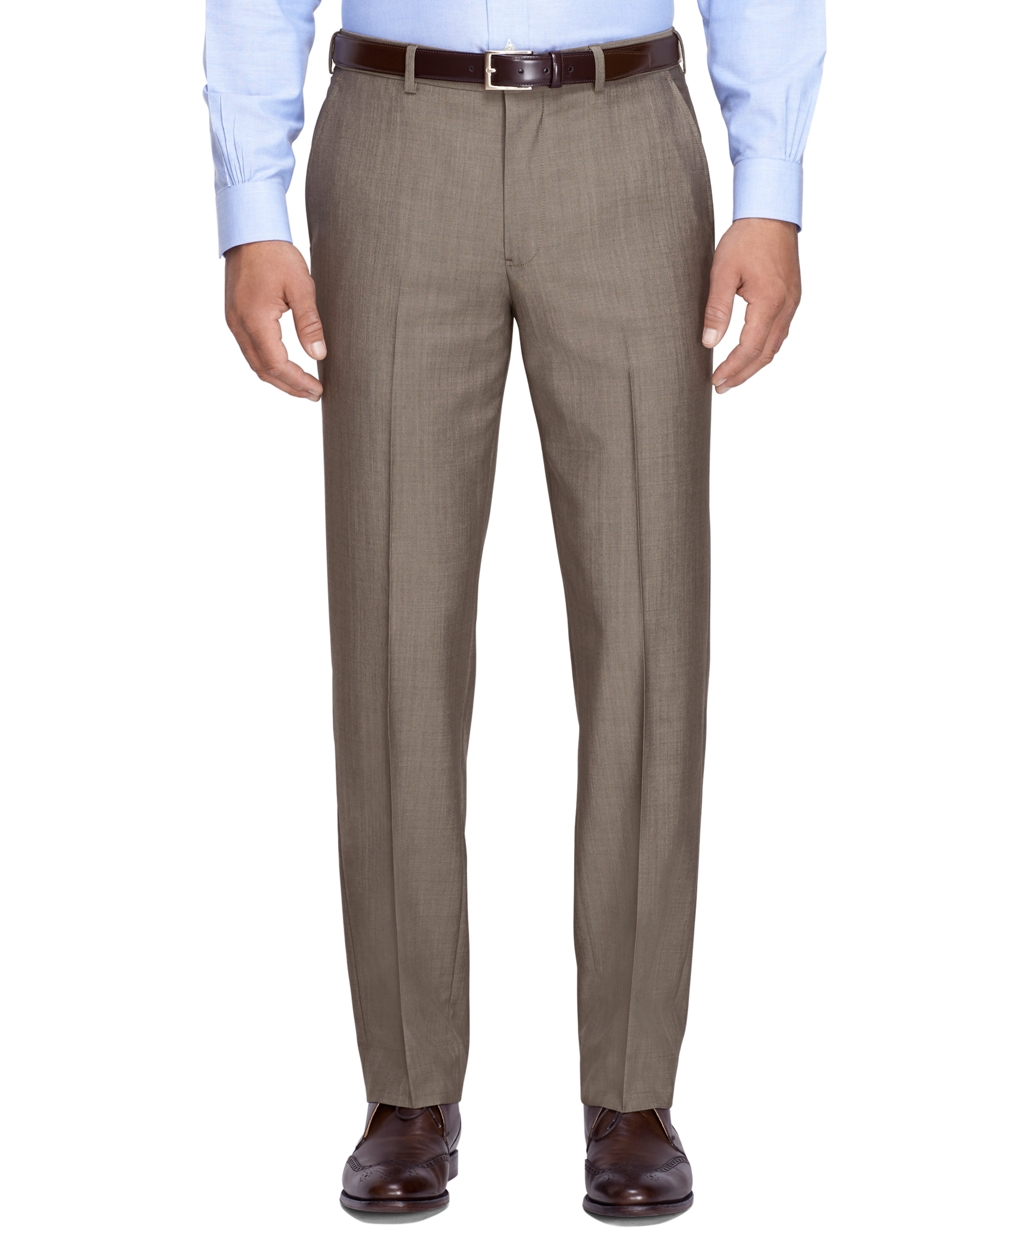 brooks brothers trousers fit guide